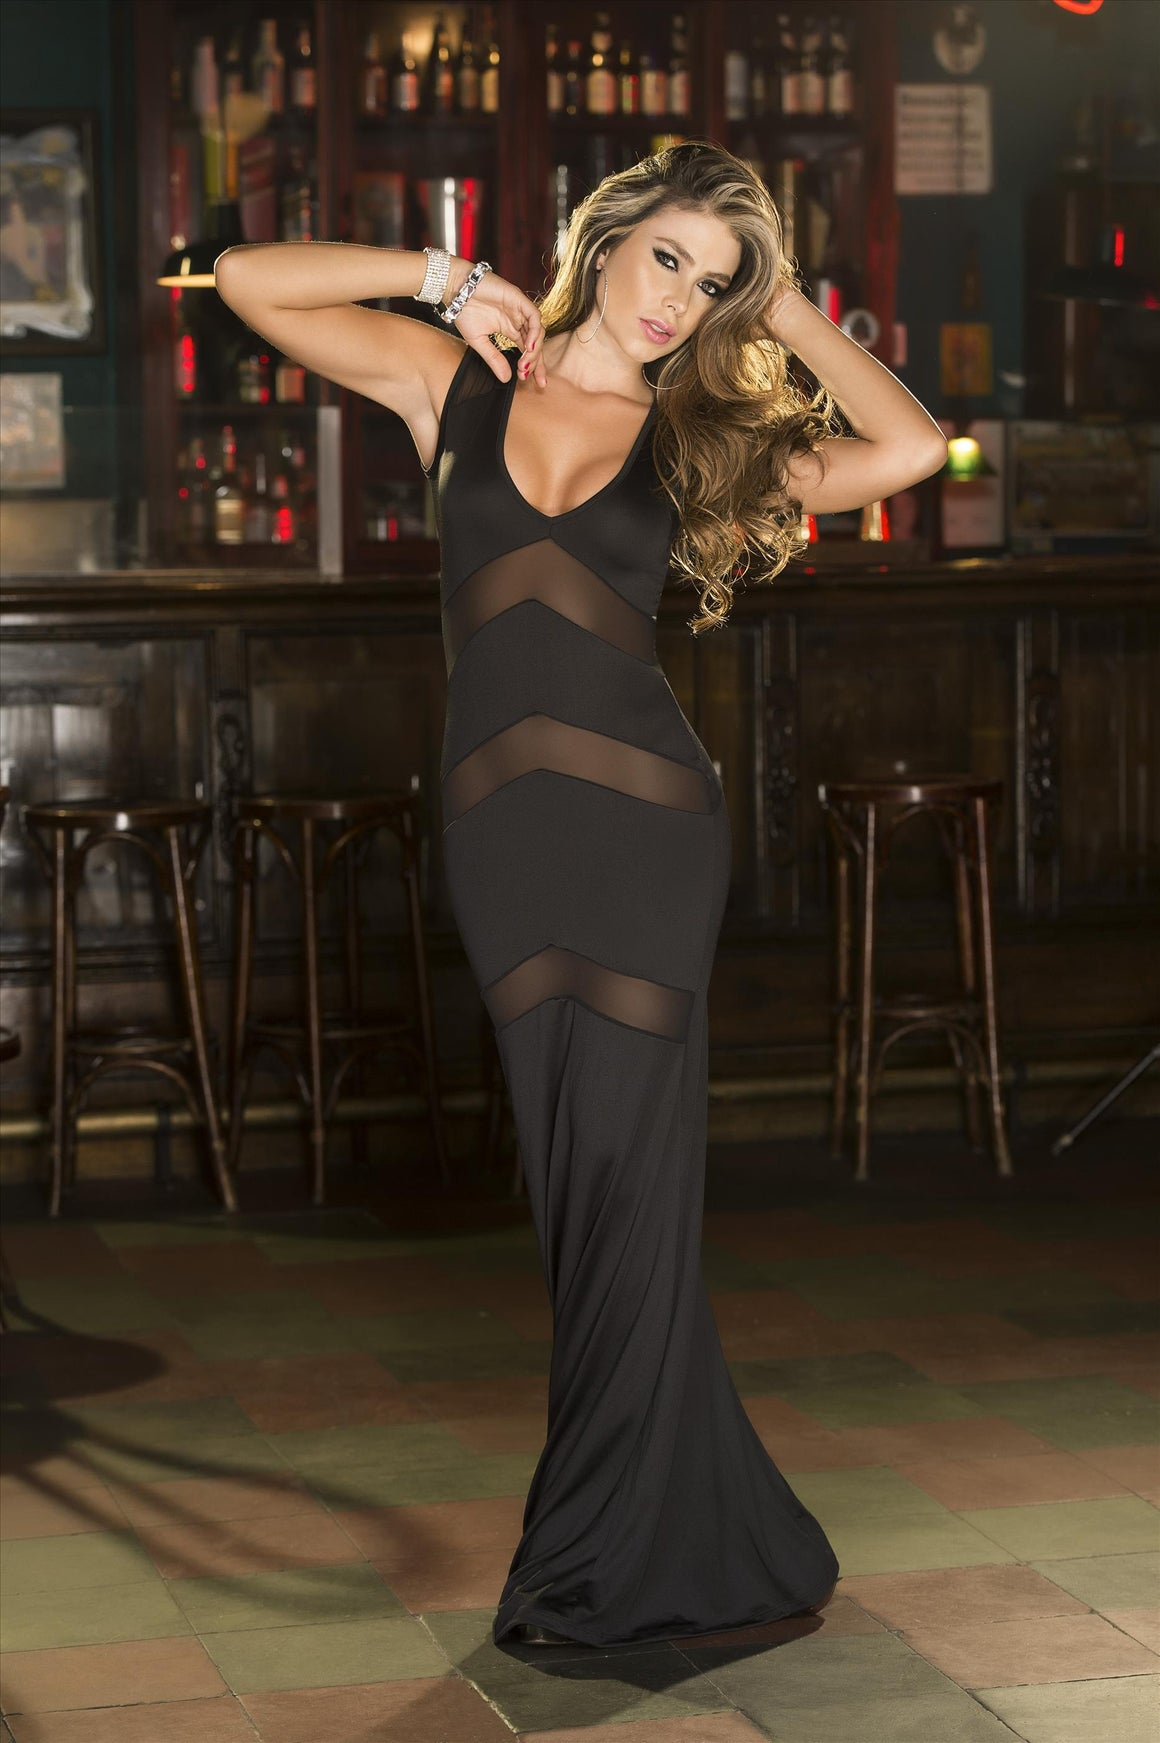 mapale Small / Black Black Long Gown w/ Sheer Panel Inserts MAP-4282-S Black Long Gown w/ Sheer Panel Inserts Mapale 4282 | SHOP NOW |  Apparel & Accessories > Clothing > Dresses